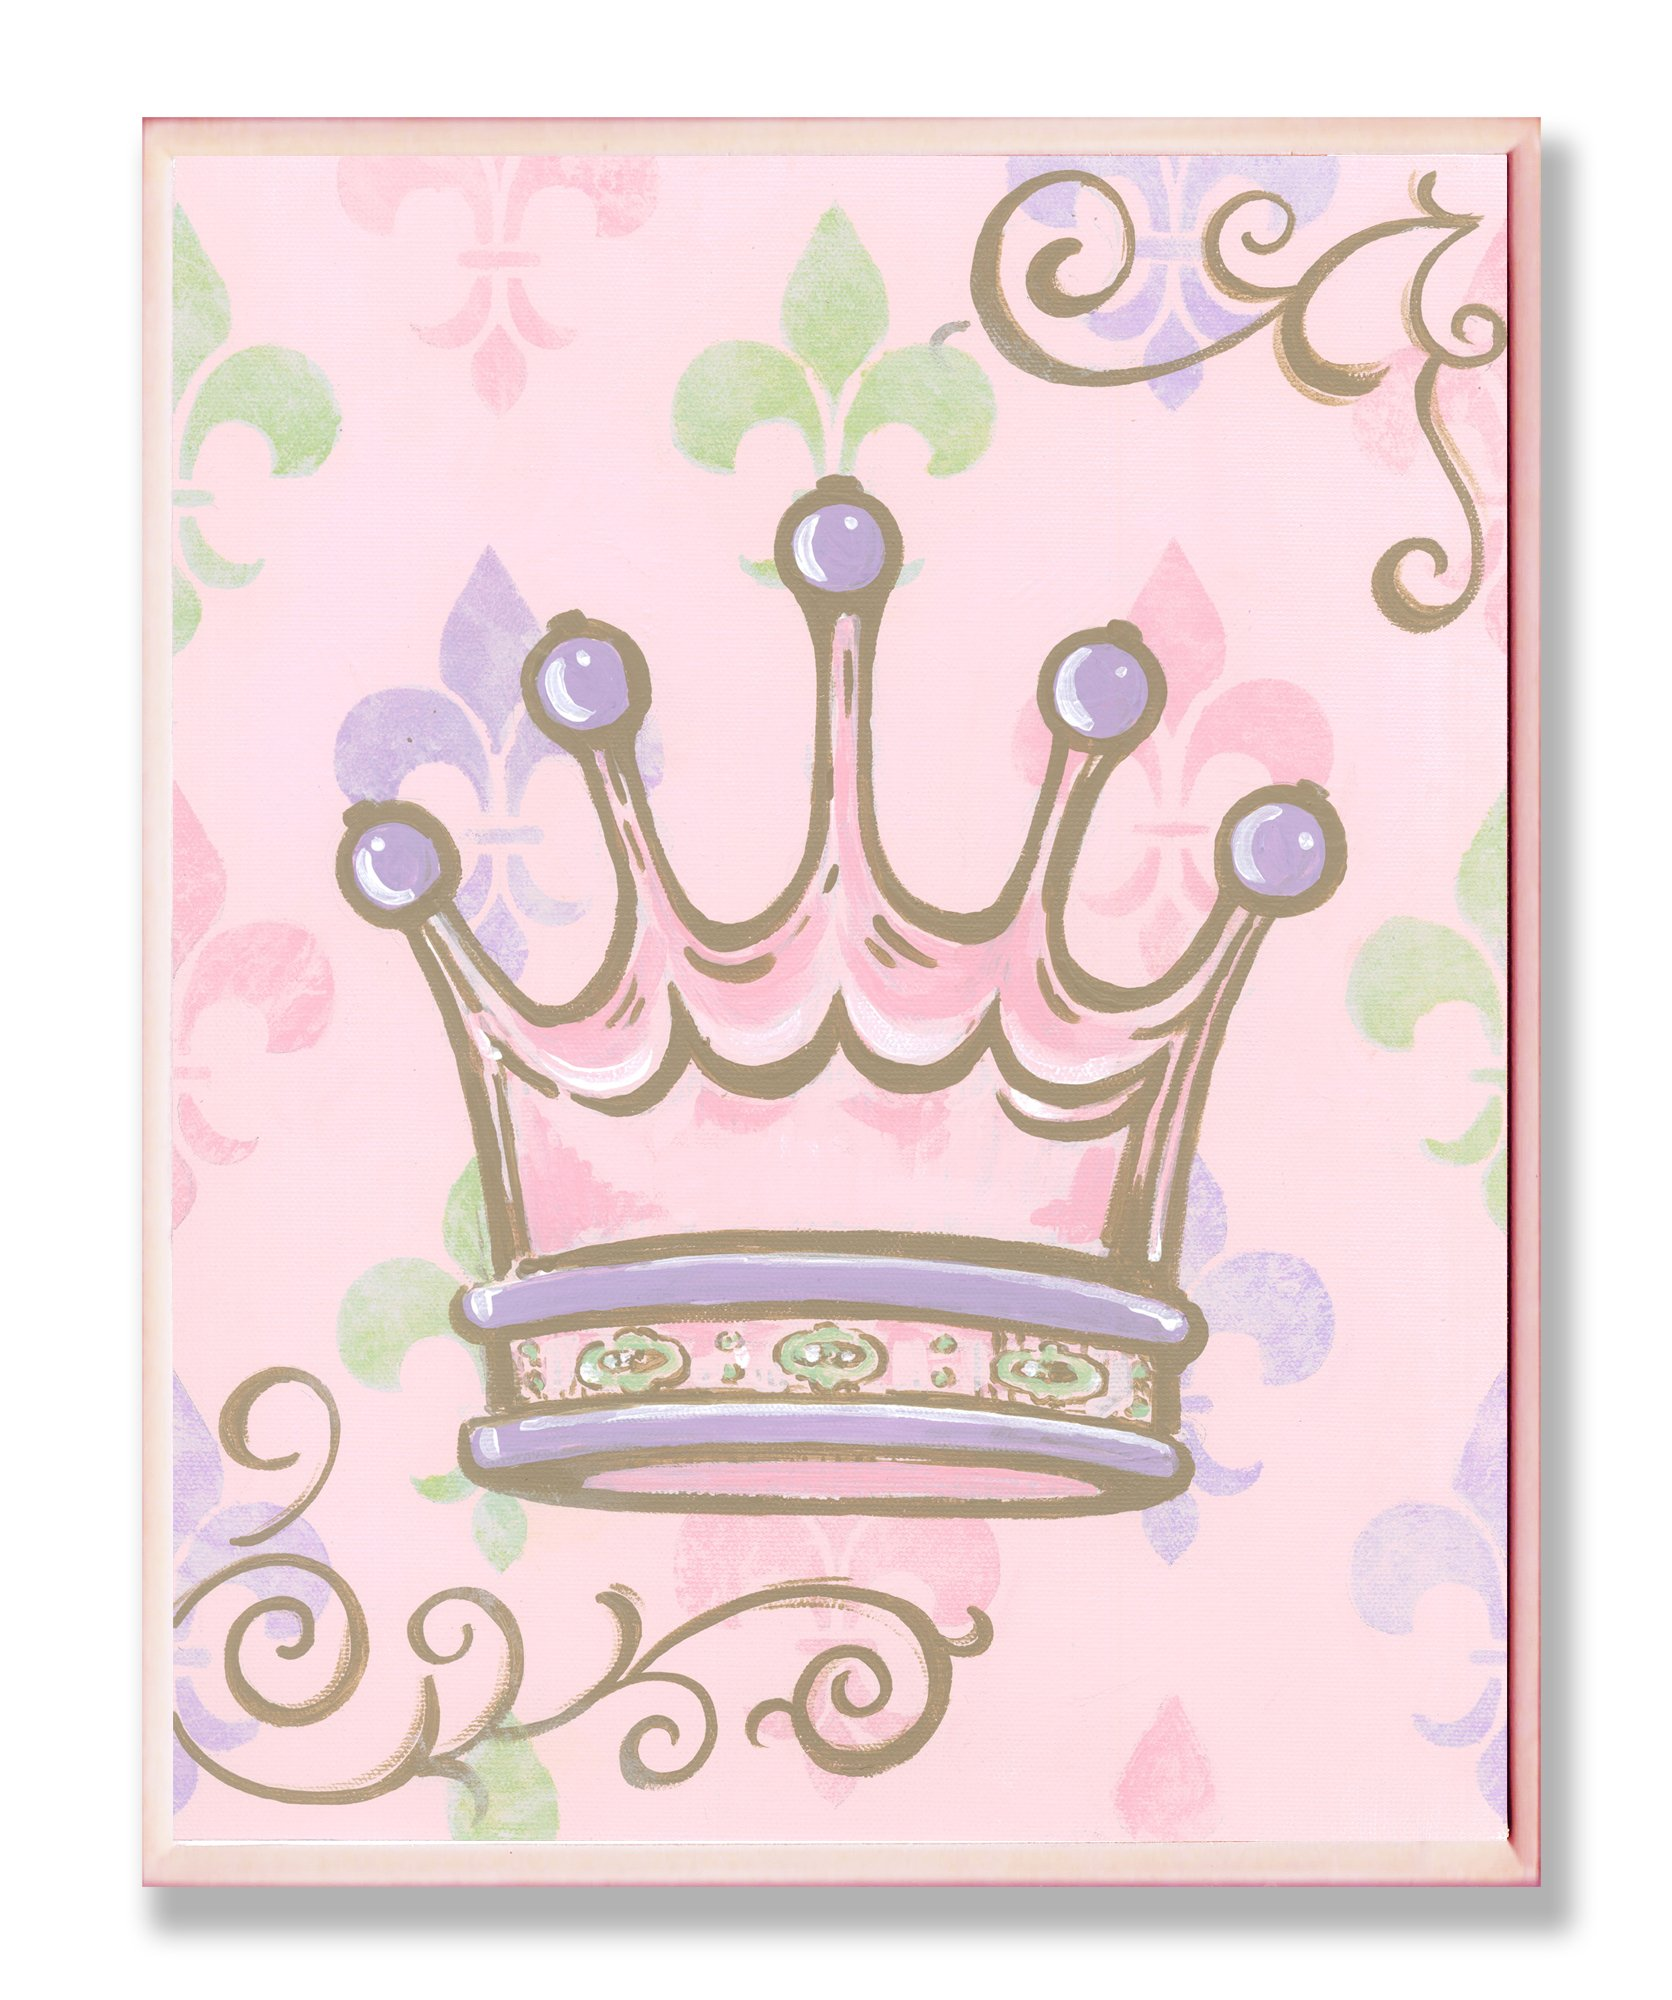 The Kids Room by Stupell Crown with Fleur de Lis on Pink Background Rectangle Wall Plaque by The Kids Room by Stupell